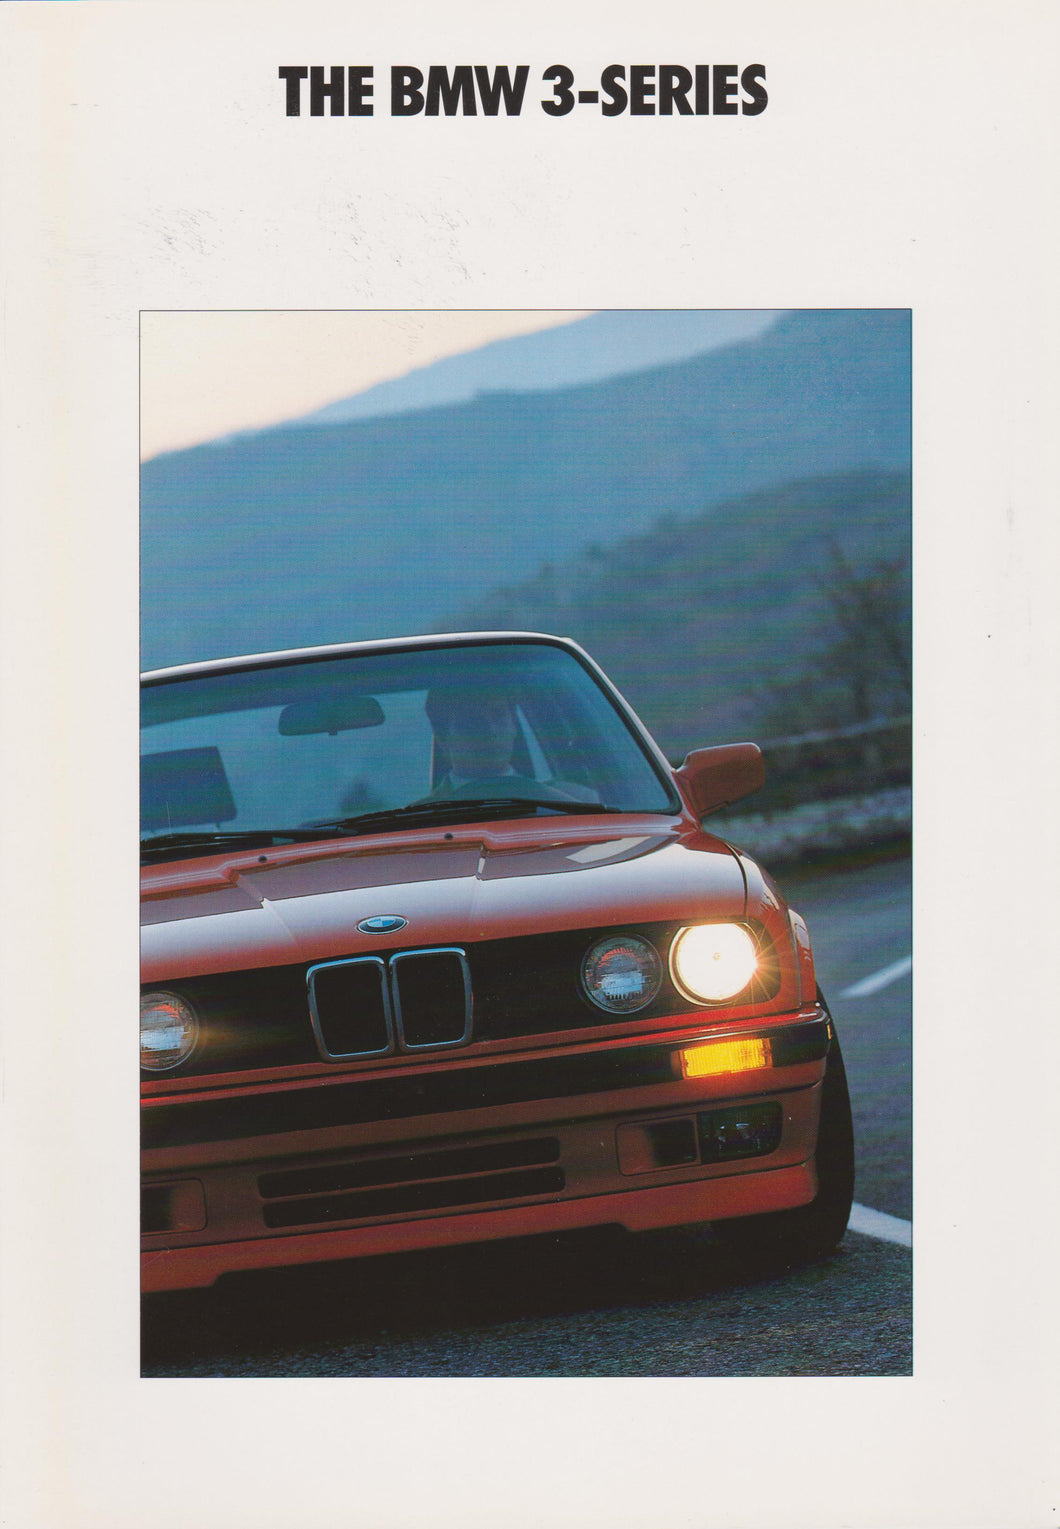 Brochure -The BMW 3-Series (1990 E30)